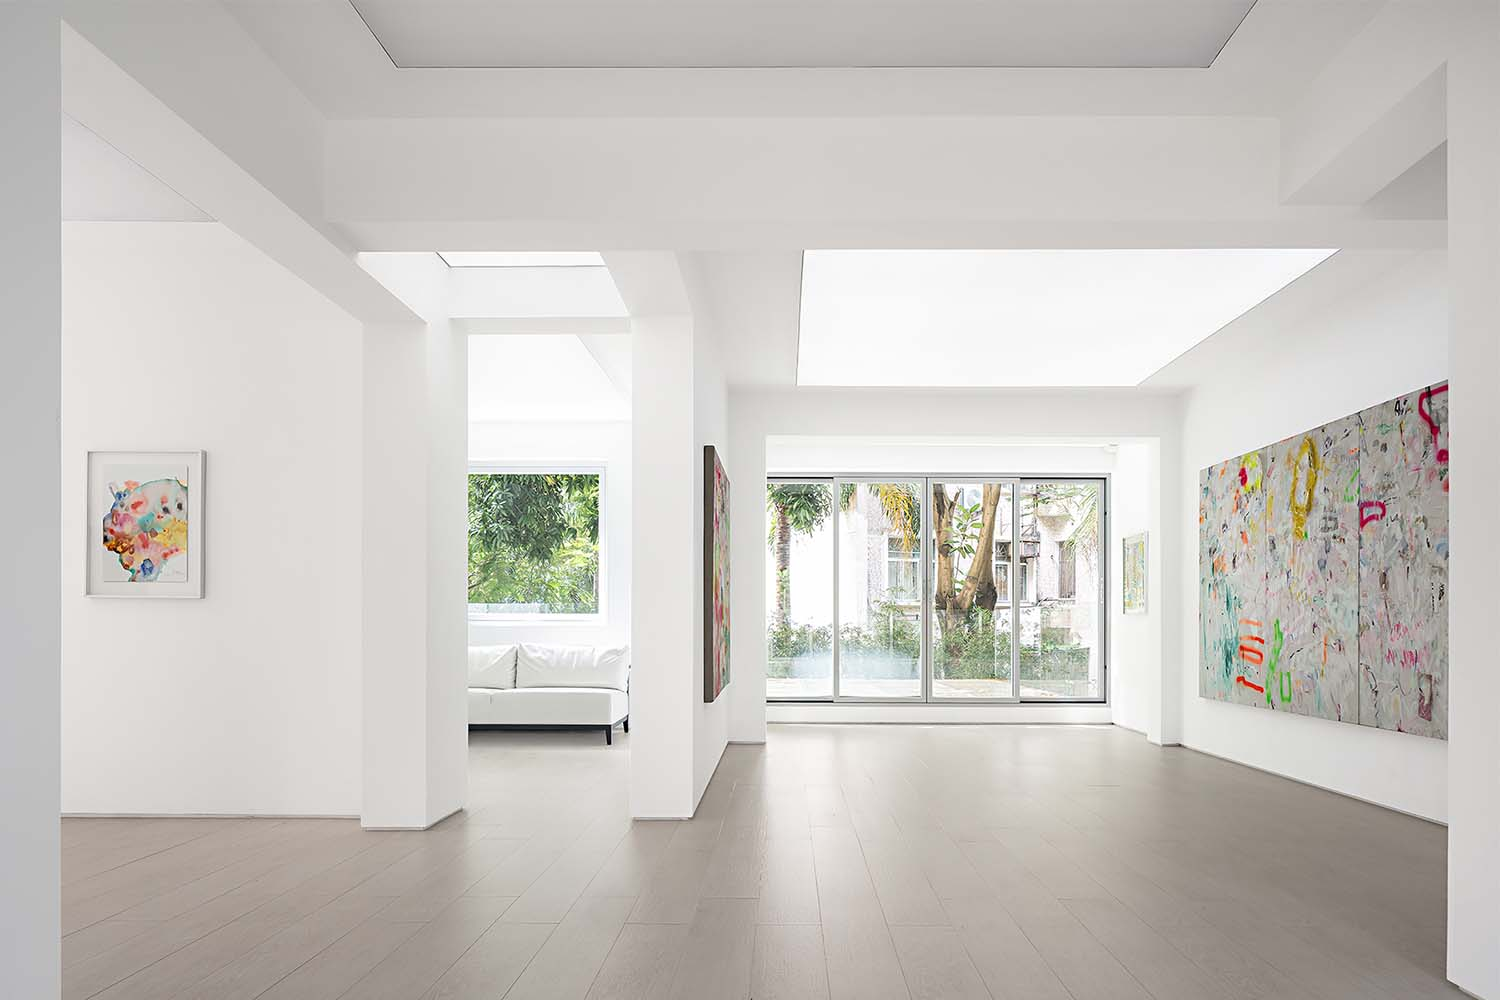 Kennaxu Gallery Showroom by Da Integrating Limited; Winner in Interior Space and Exhibition Design Category, 2020—2021